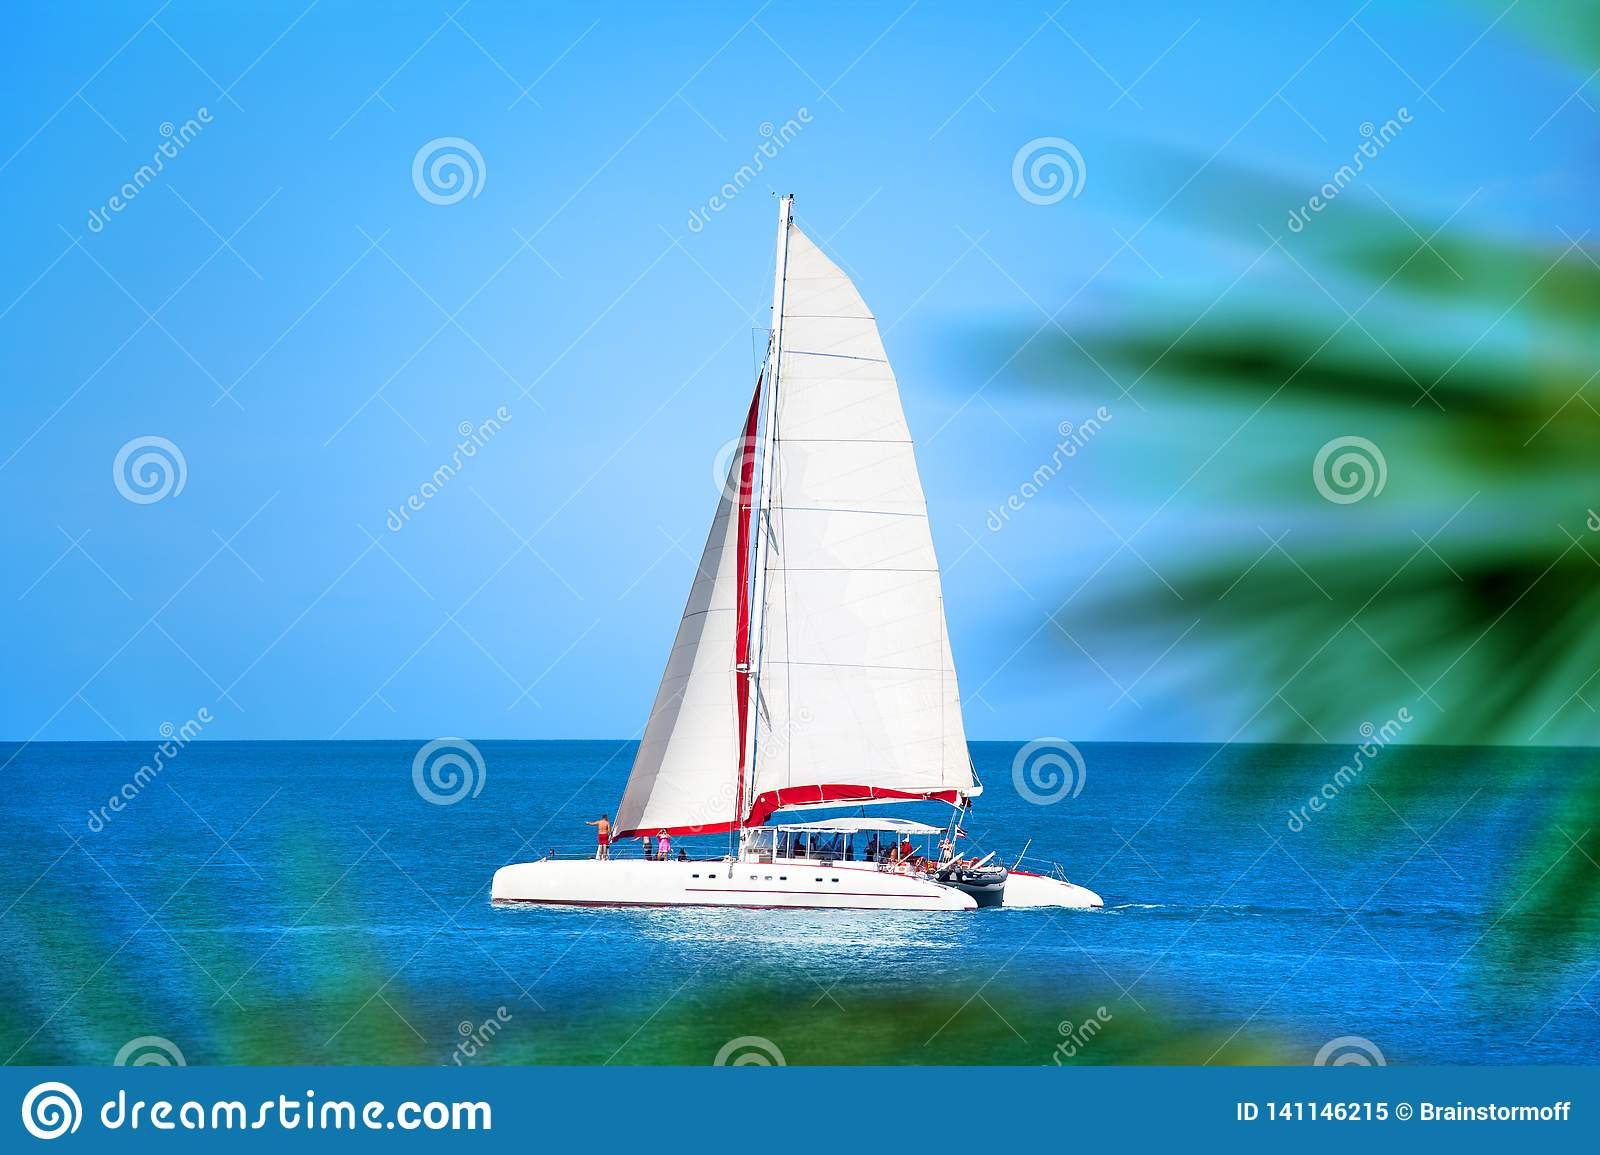 Catamaran with white sail in blue sea, palm branches background, people relax on boat, summer vacation sea trip on ship